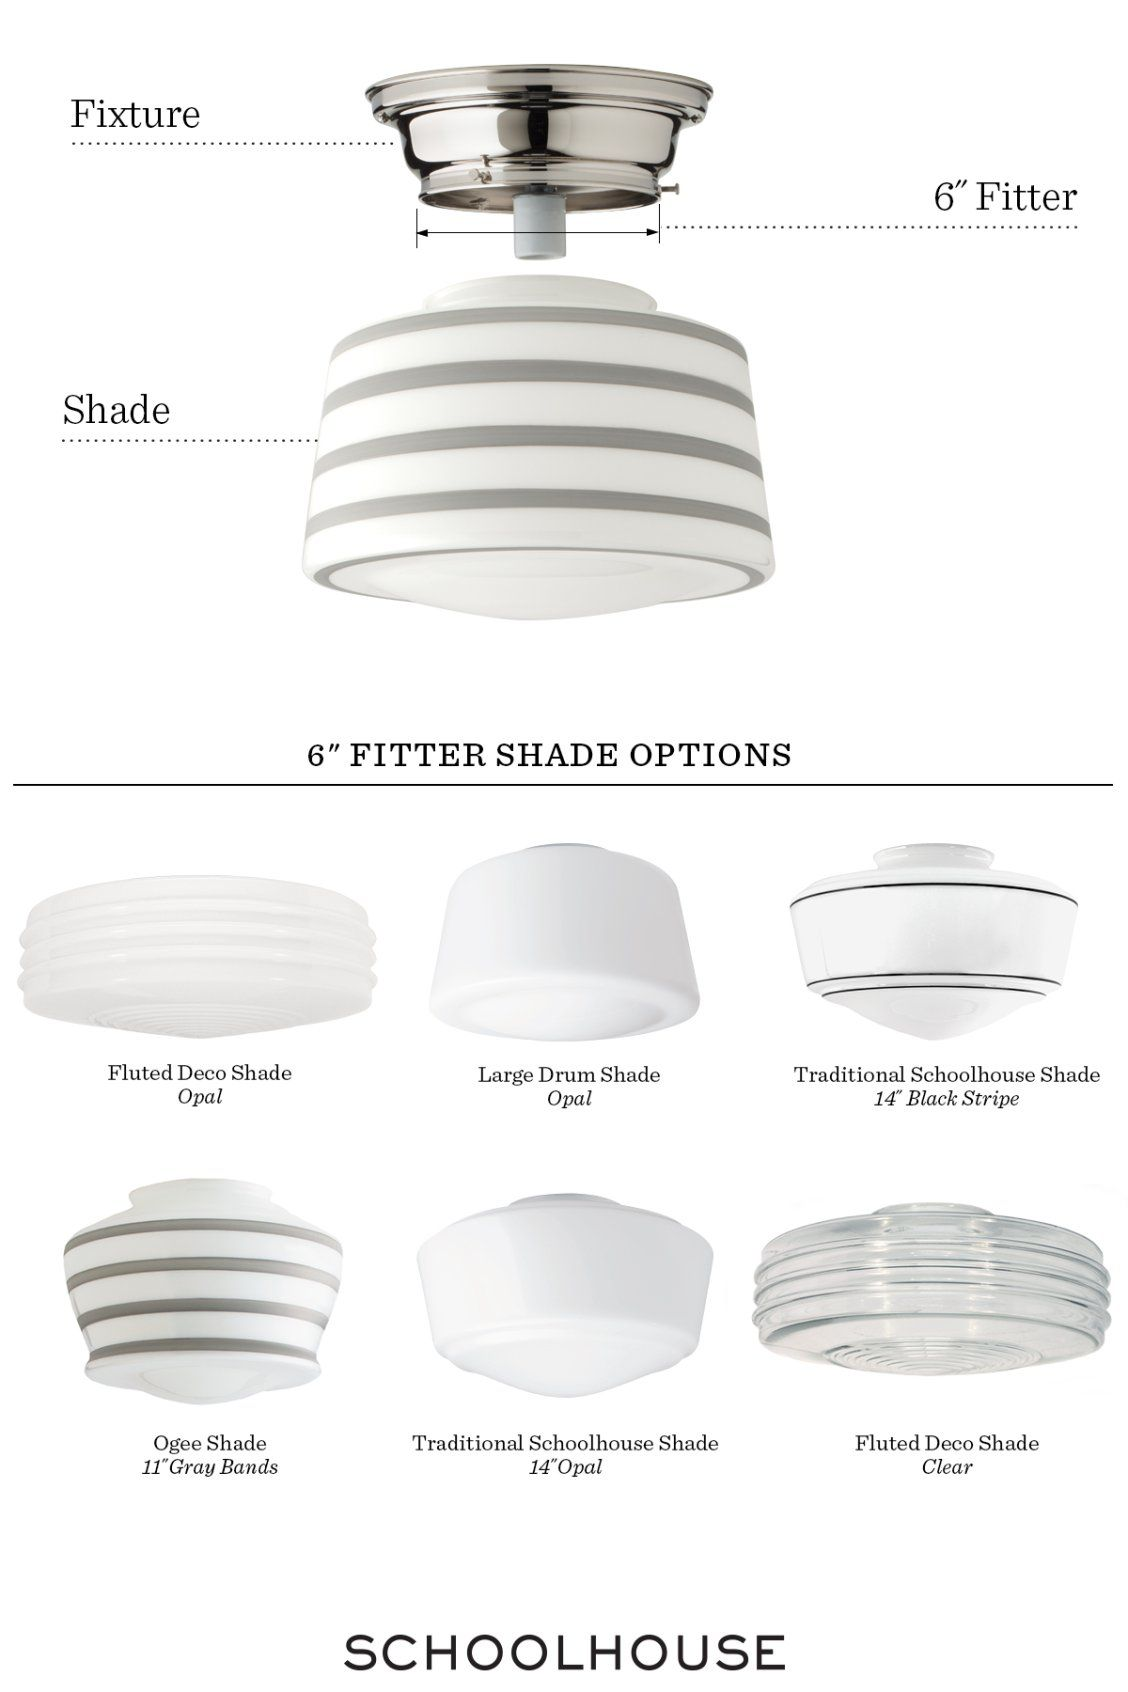 Anatomy Of A Surface Mount Schoolhouse Lighting Easy